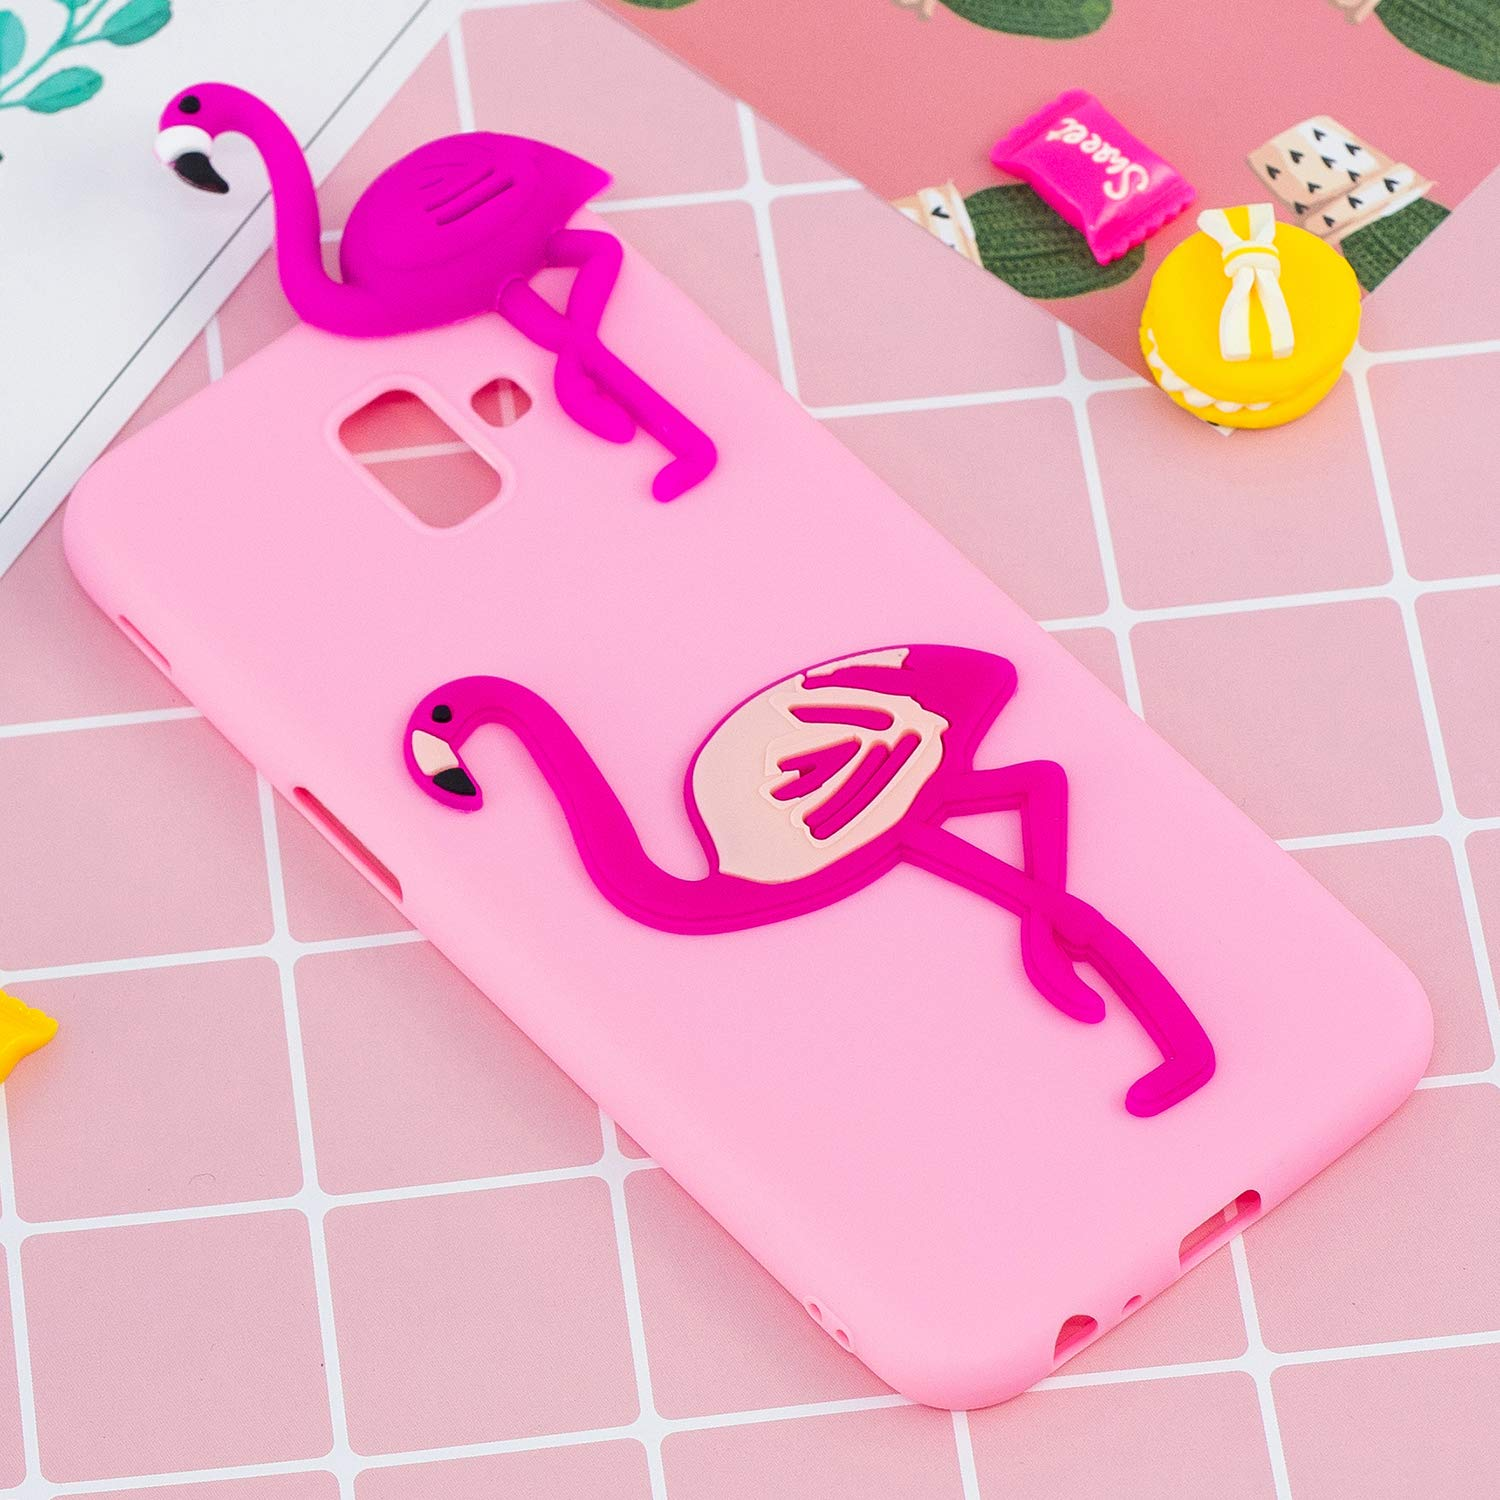 ZCXG Compatible with Samsung Galaxy J6 Plus Case Pink Flamingo Silicone Gel Shockproof Phone Protective Cover Slim Fit Ultra Thin TPU Lovely Case Animal Cute for Samsung J6 Plus